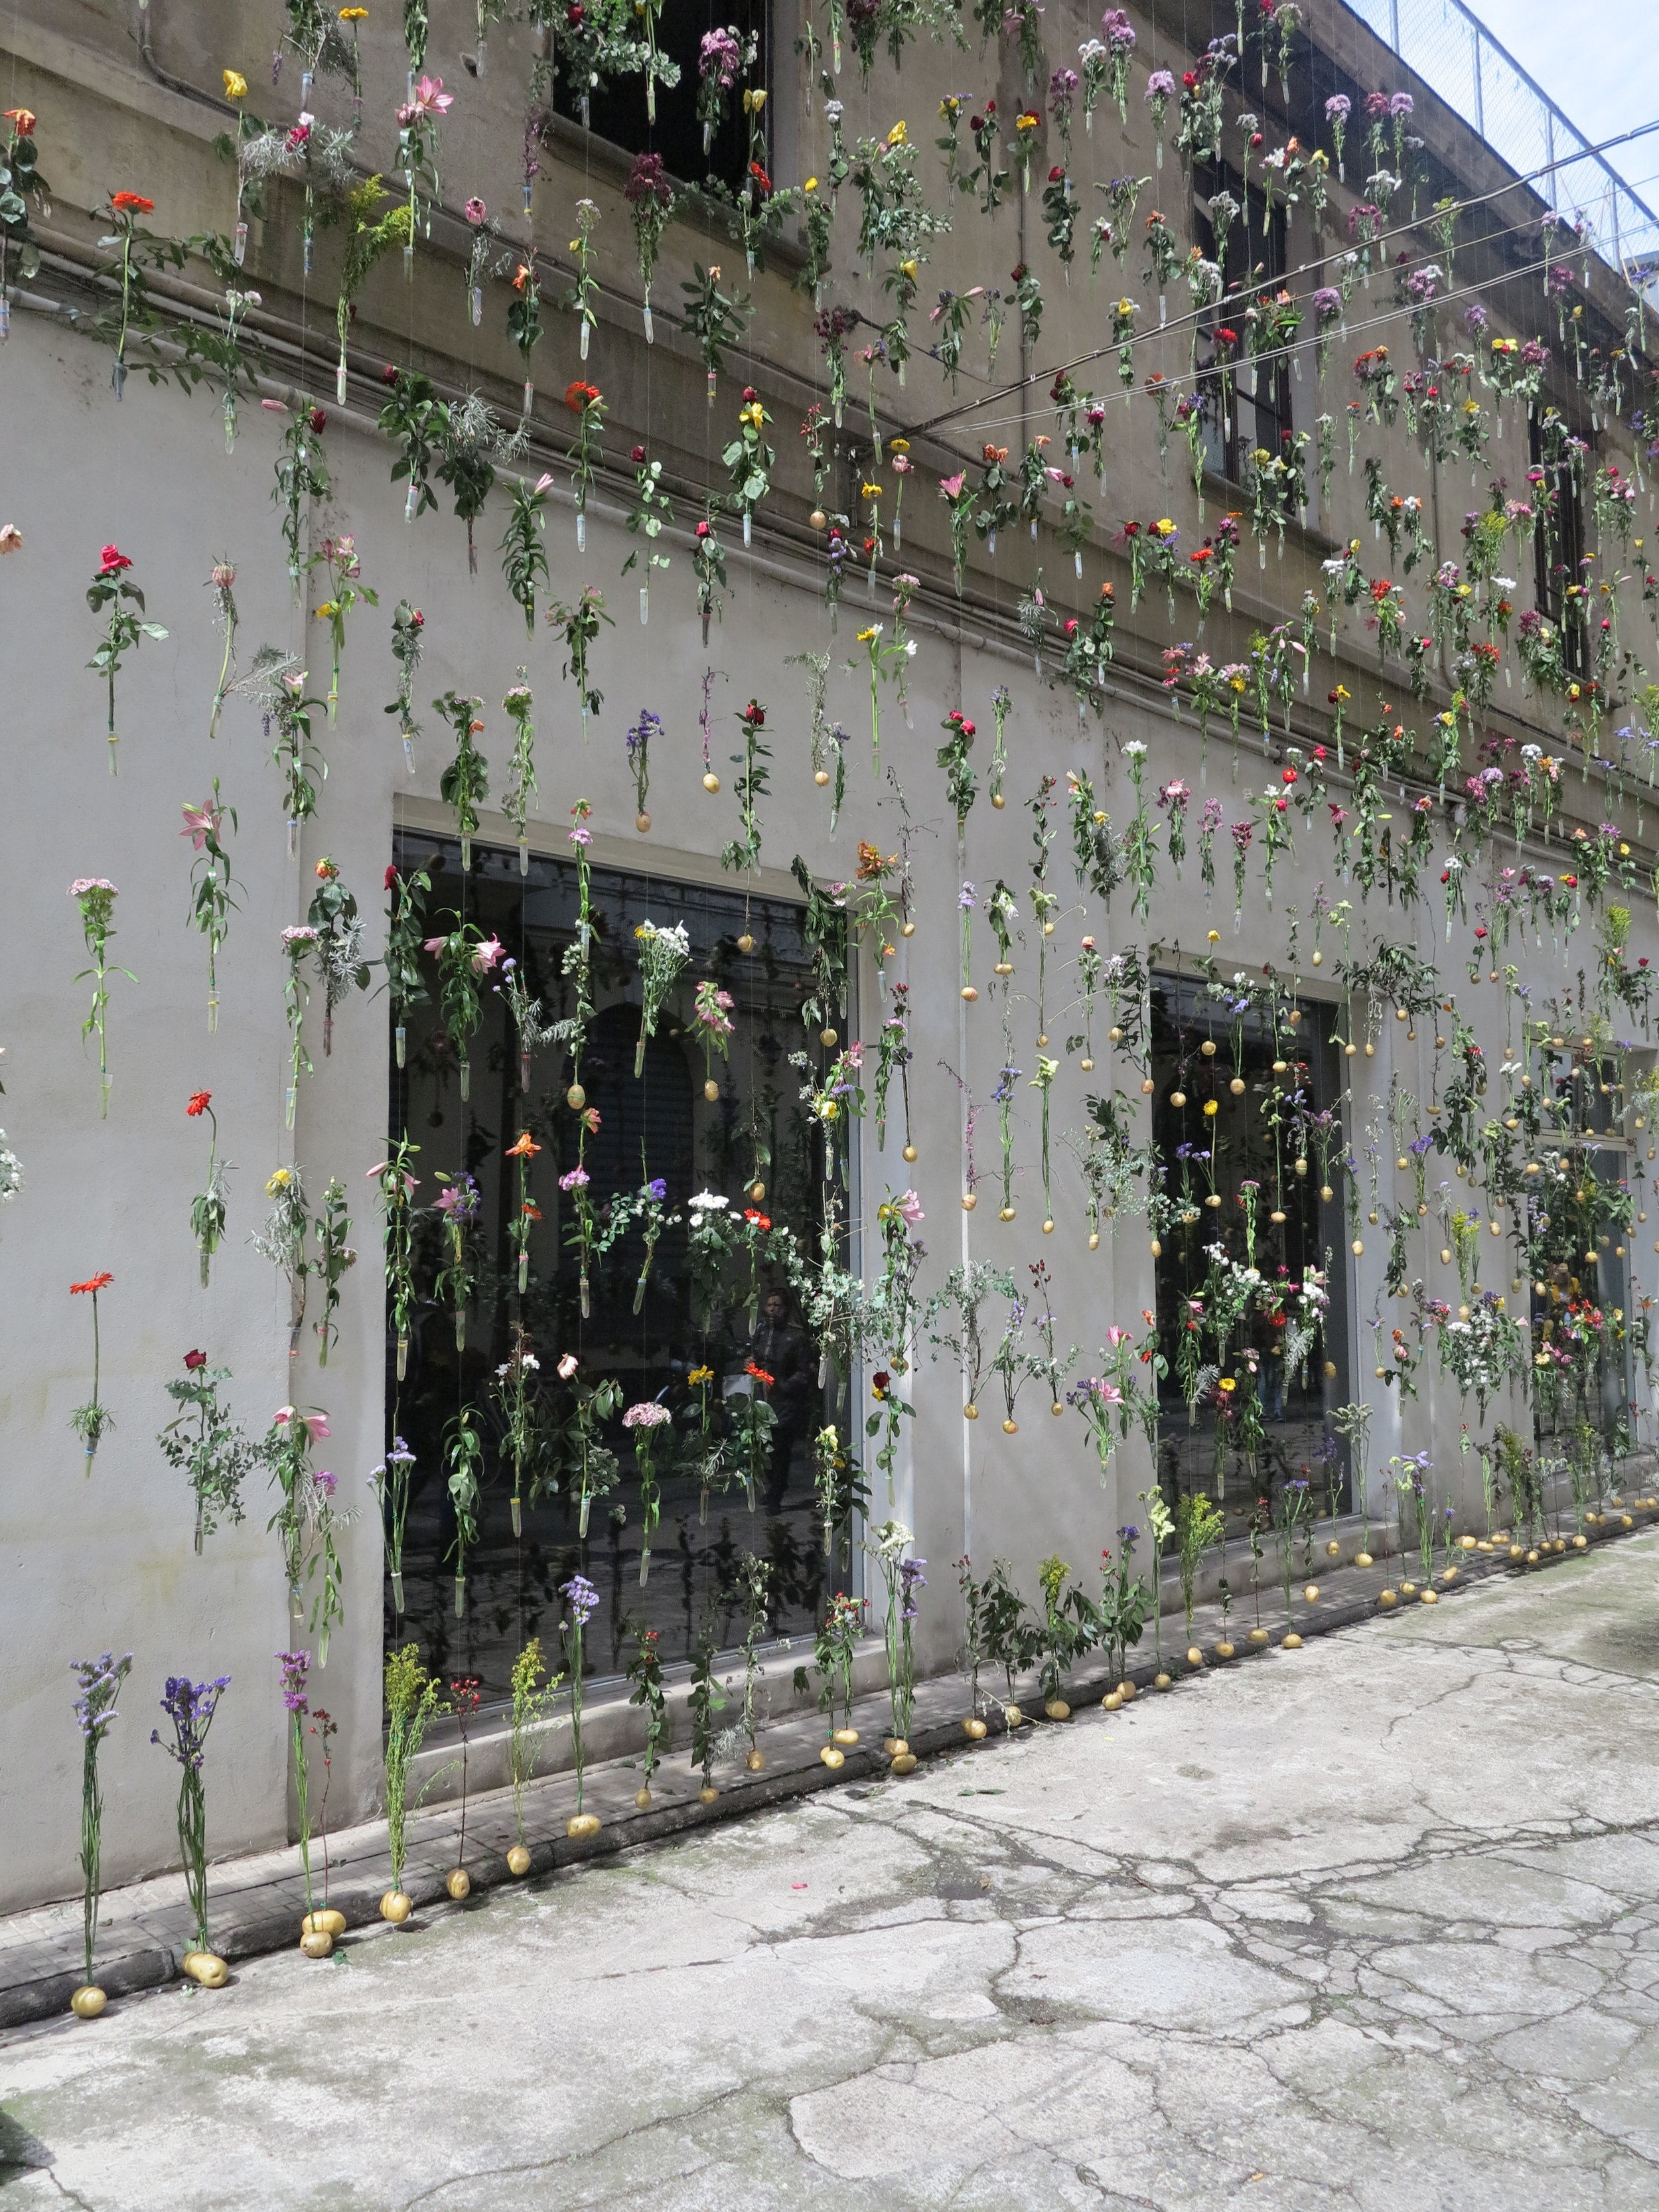 As part of the Brera Design Week, Piuarch presented 'Flowerprint', a facade gardening installation. The installation was completed in collaboration with the landscape architect Cornelius Gavril, in which a vegetable patch/garden decorates the entire front of the building from ground to roof.